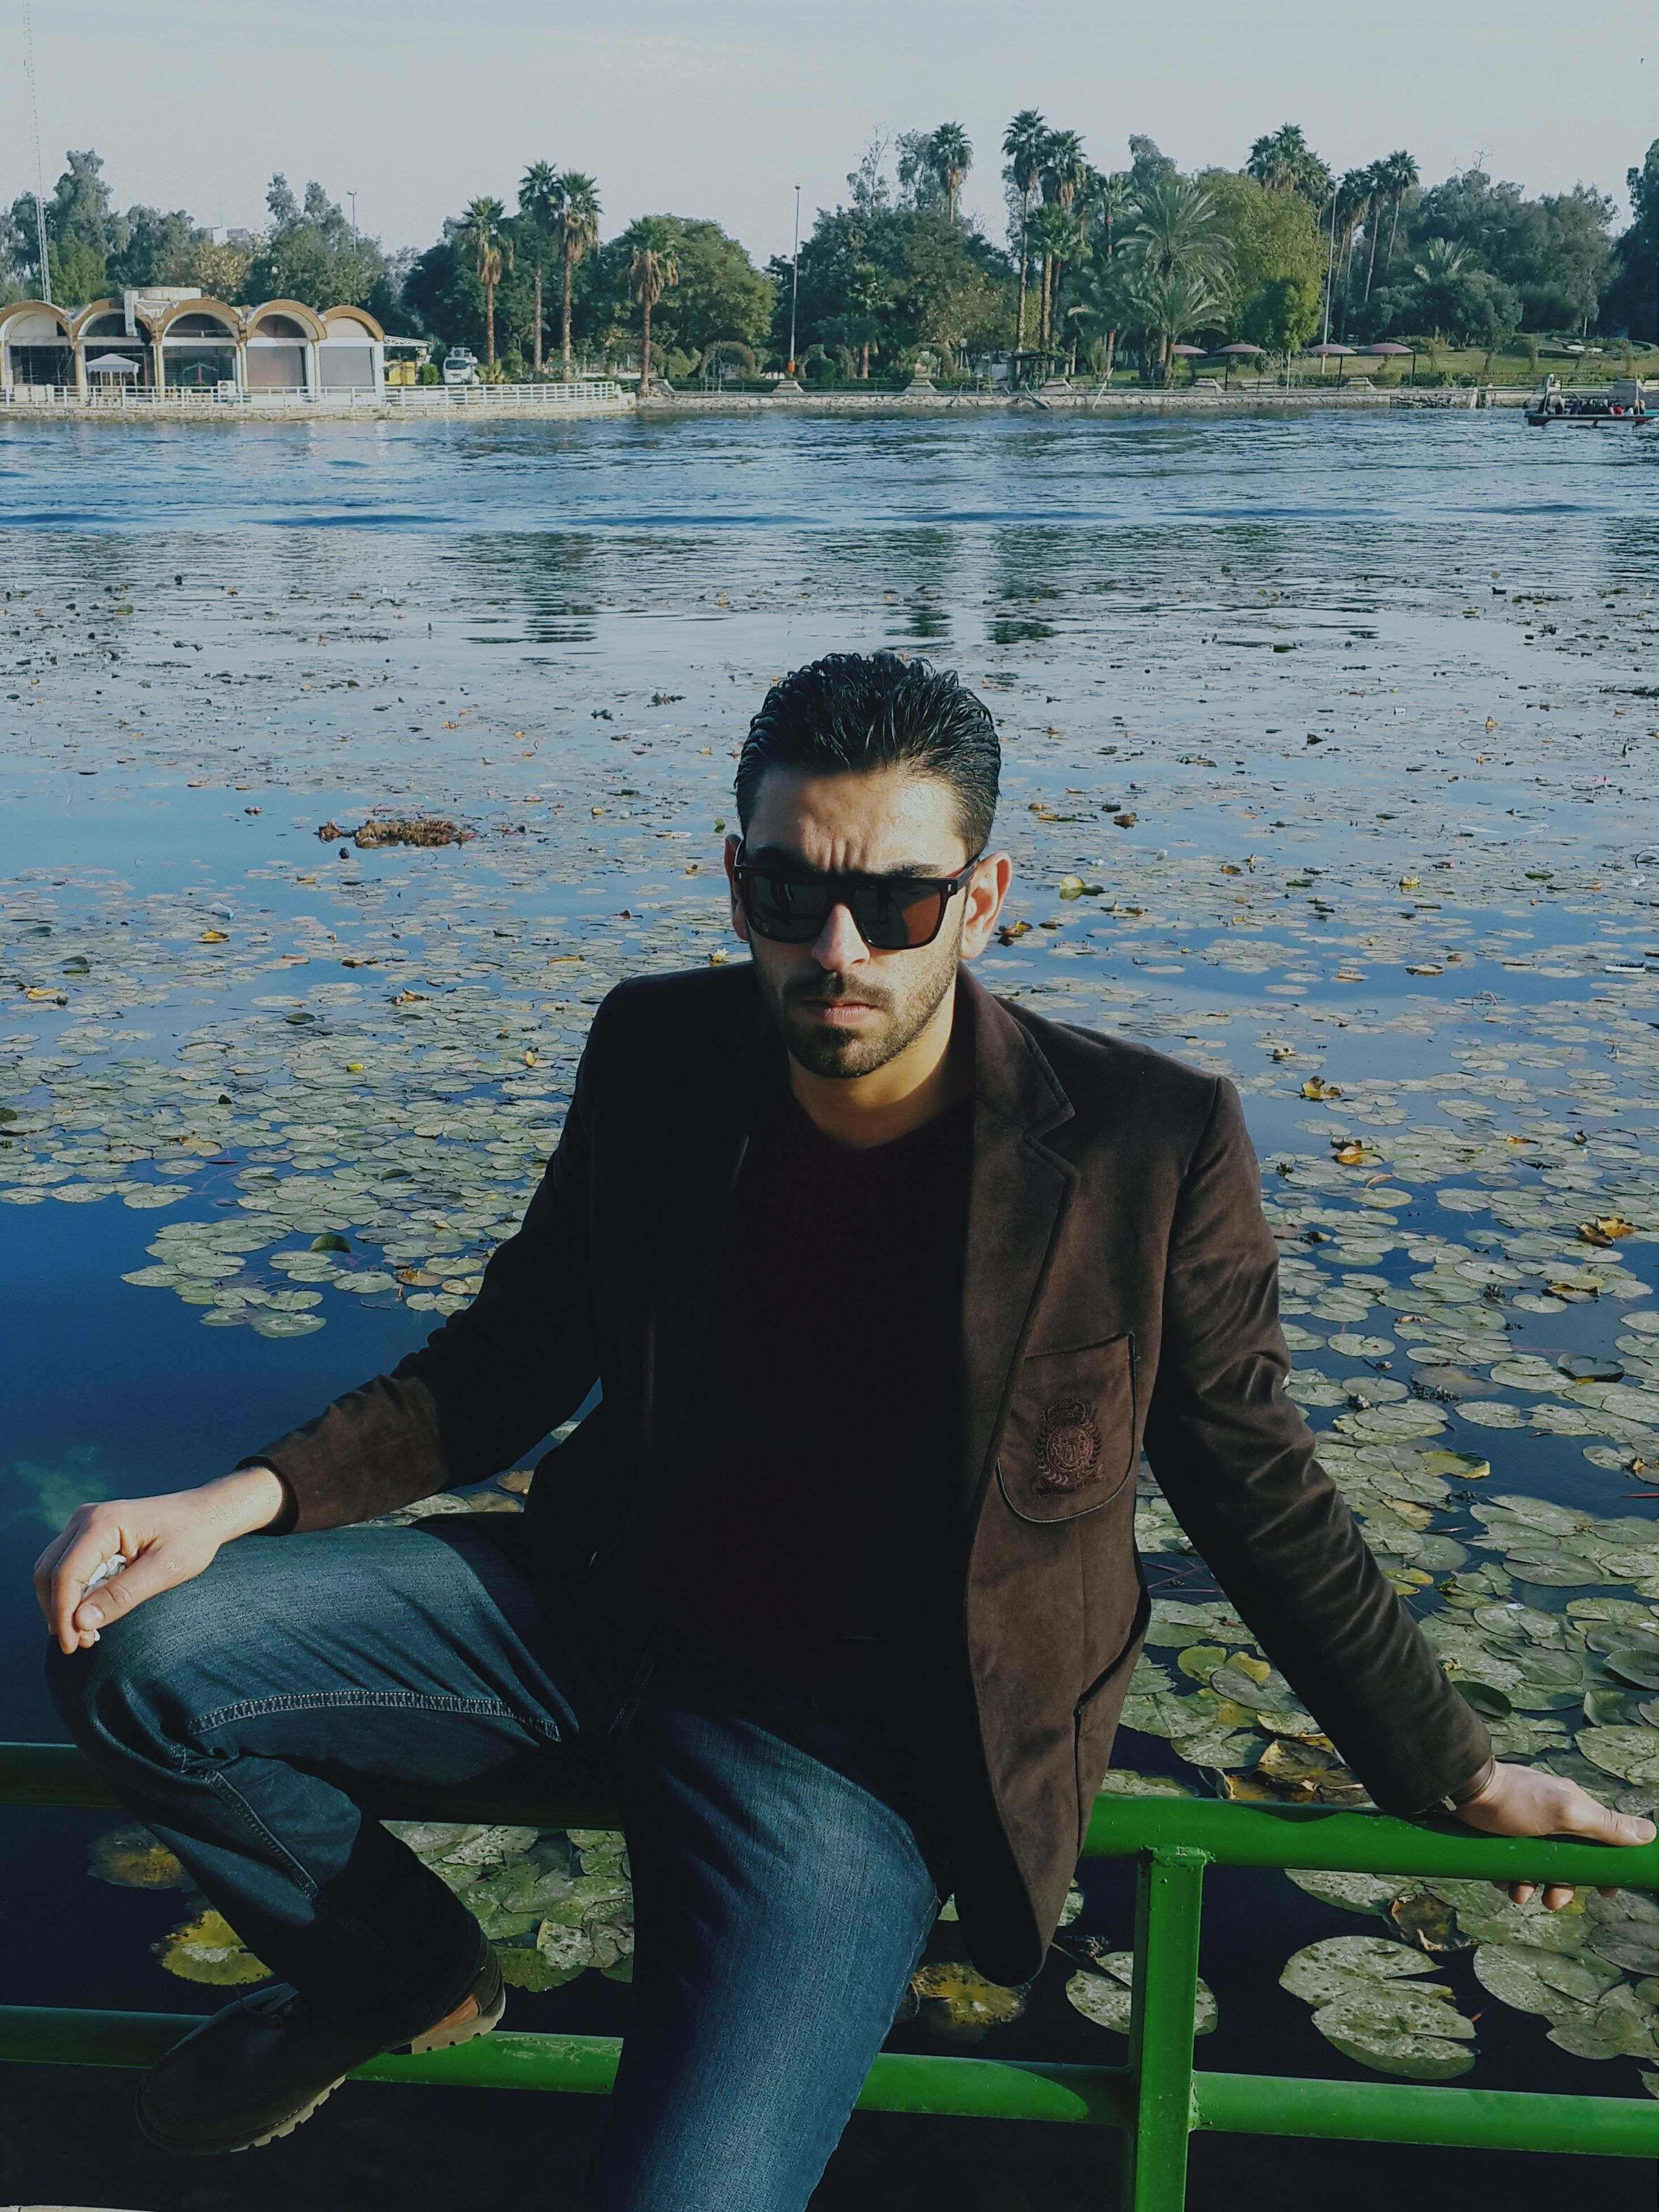 water, lifestyles, casual clothing, leisure activity, young adult, lake, portrait, person, standing, looking at camera, sunglasses, three quarter length, sitting, river, waist up, young men, front view